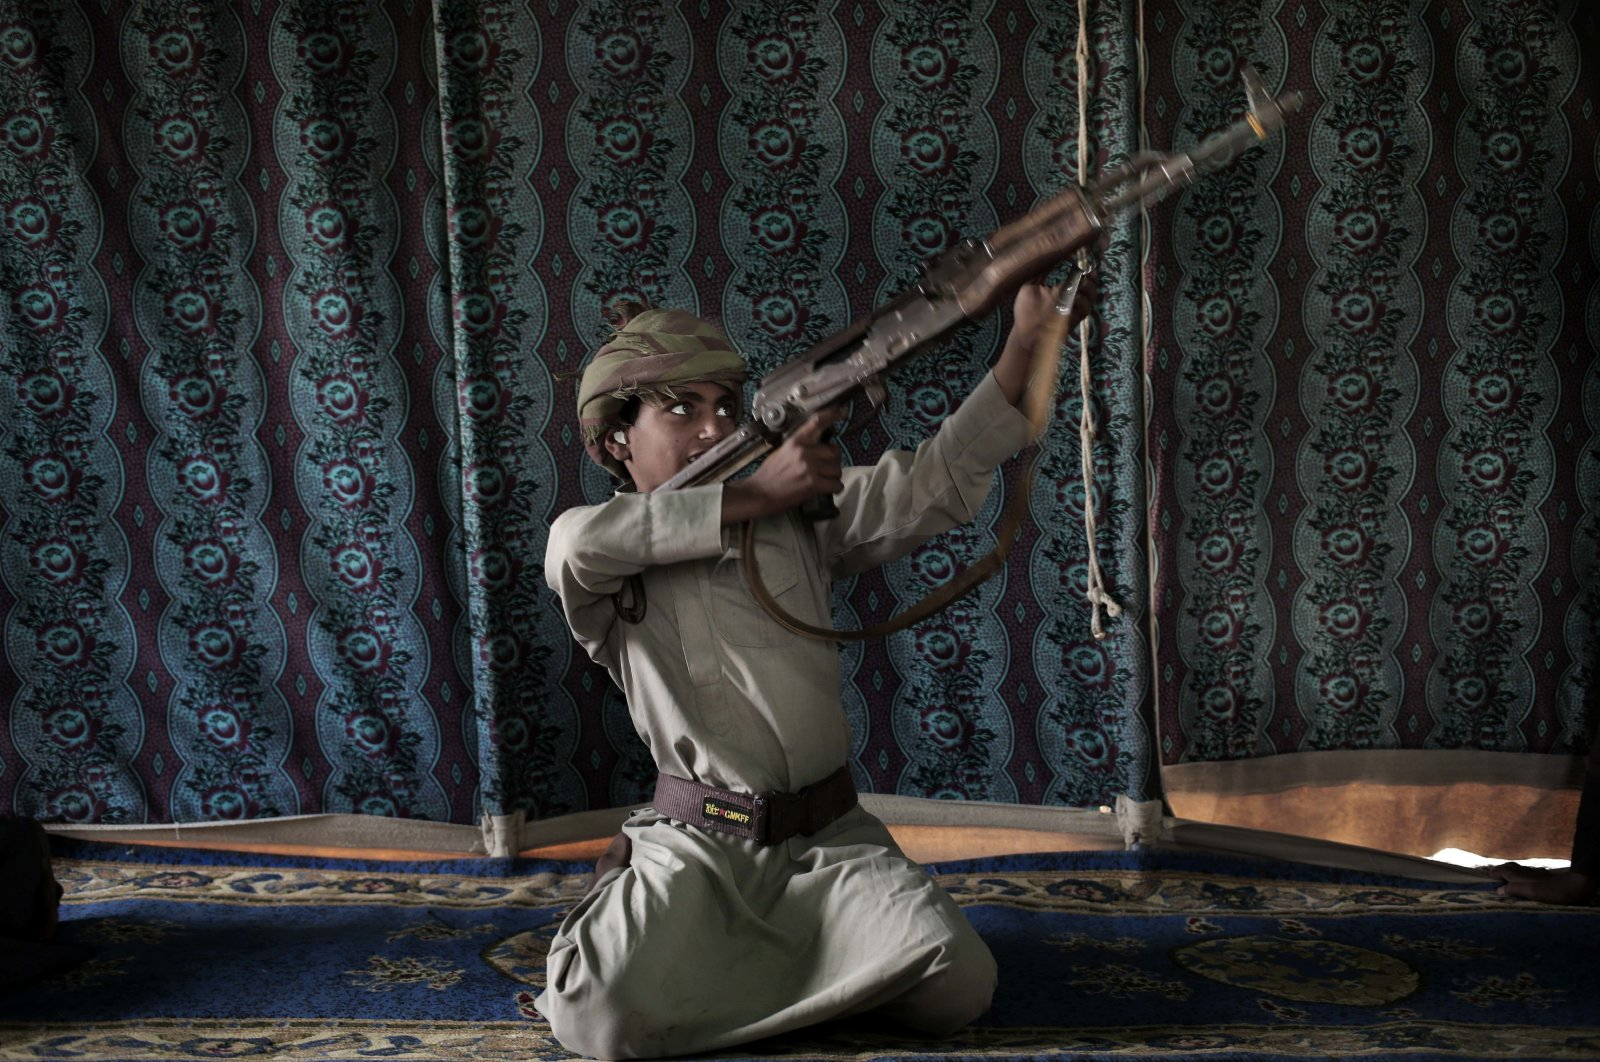 Kahlan, a 12-year-old former child soldier who fought alongside Houthi rebels, demonstrates how to use a weapon at a camp for displaced persons where he took shelter with his family in Marib, Yemen, July 27, 2018. (AP Photo)